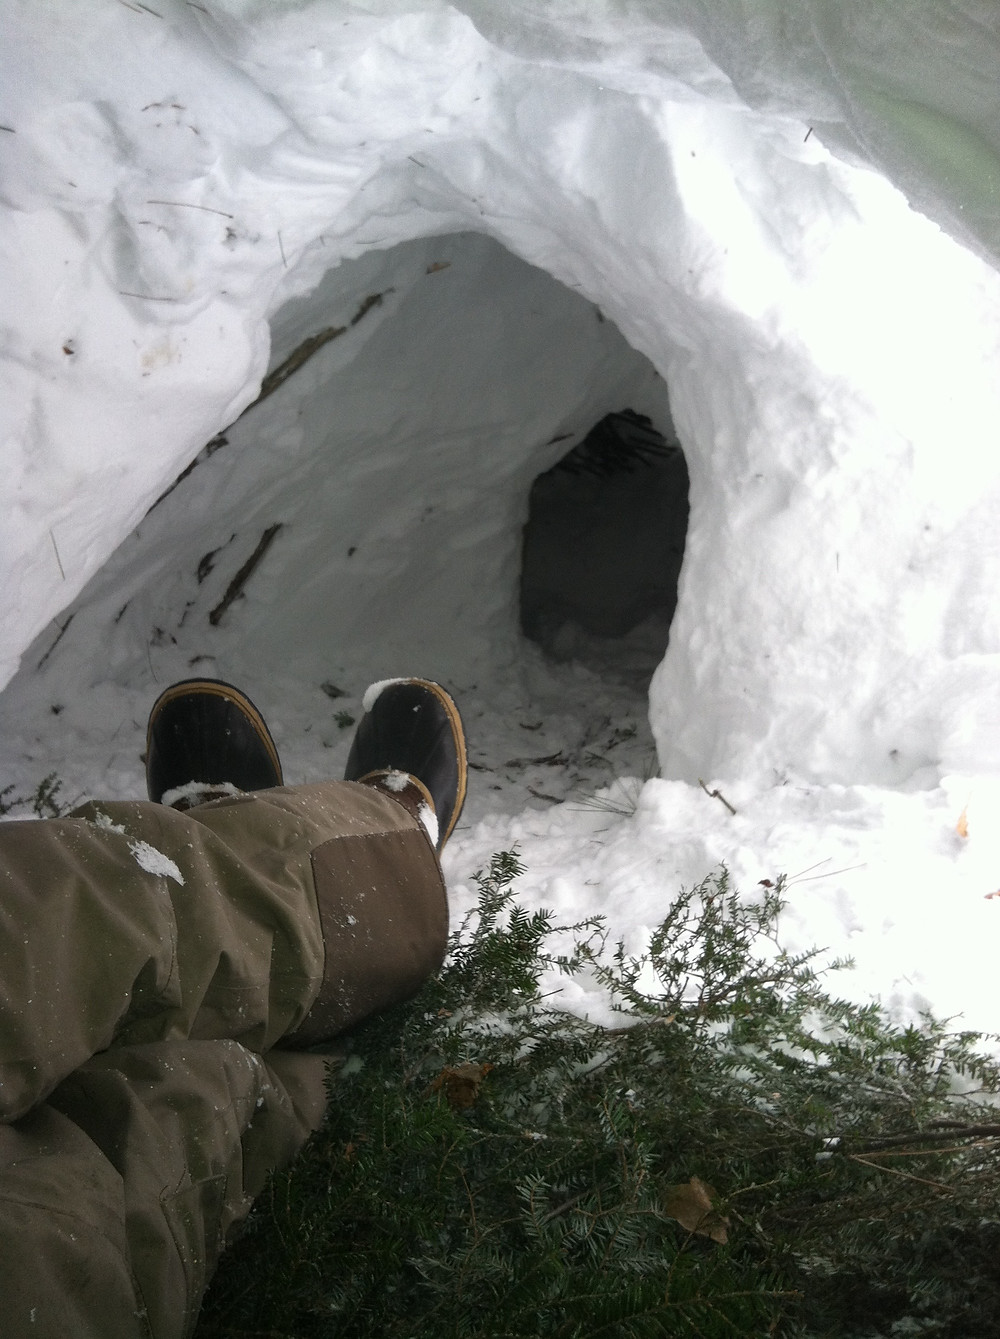 Snow pants & Shelter Building